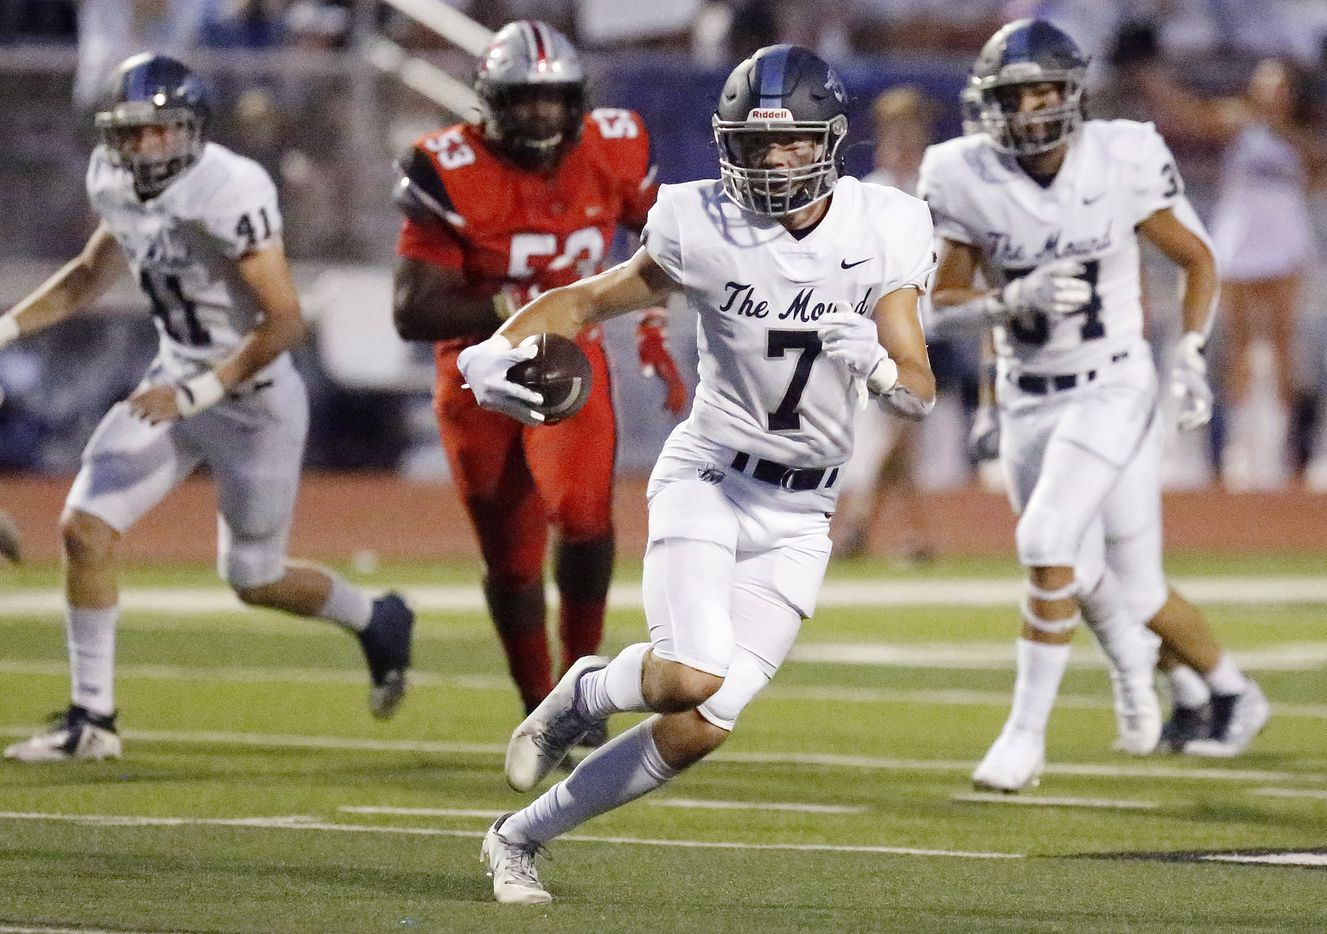 Flower Mound High School safety Cade Harwell (7) runs with an interception during the first half as Flower Mound Marcus hosted Flower Mound High School in a district 6-6A football game at Marauder Stadium in Flower Mound on Friday night, September 24, 2021. (Stewart F. House/Special Contributor)